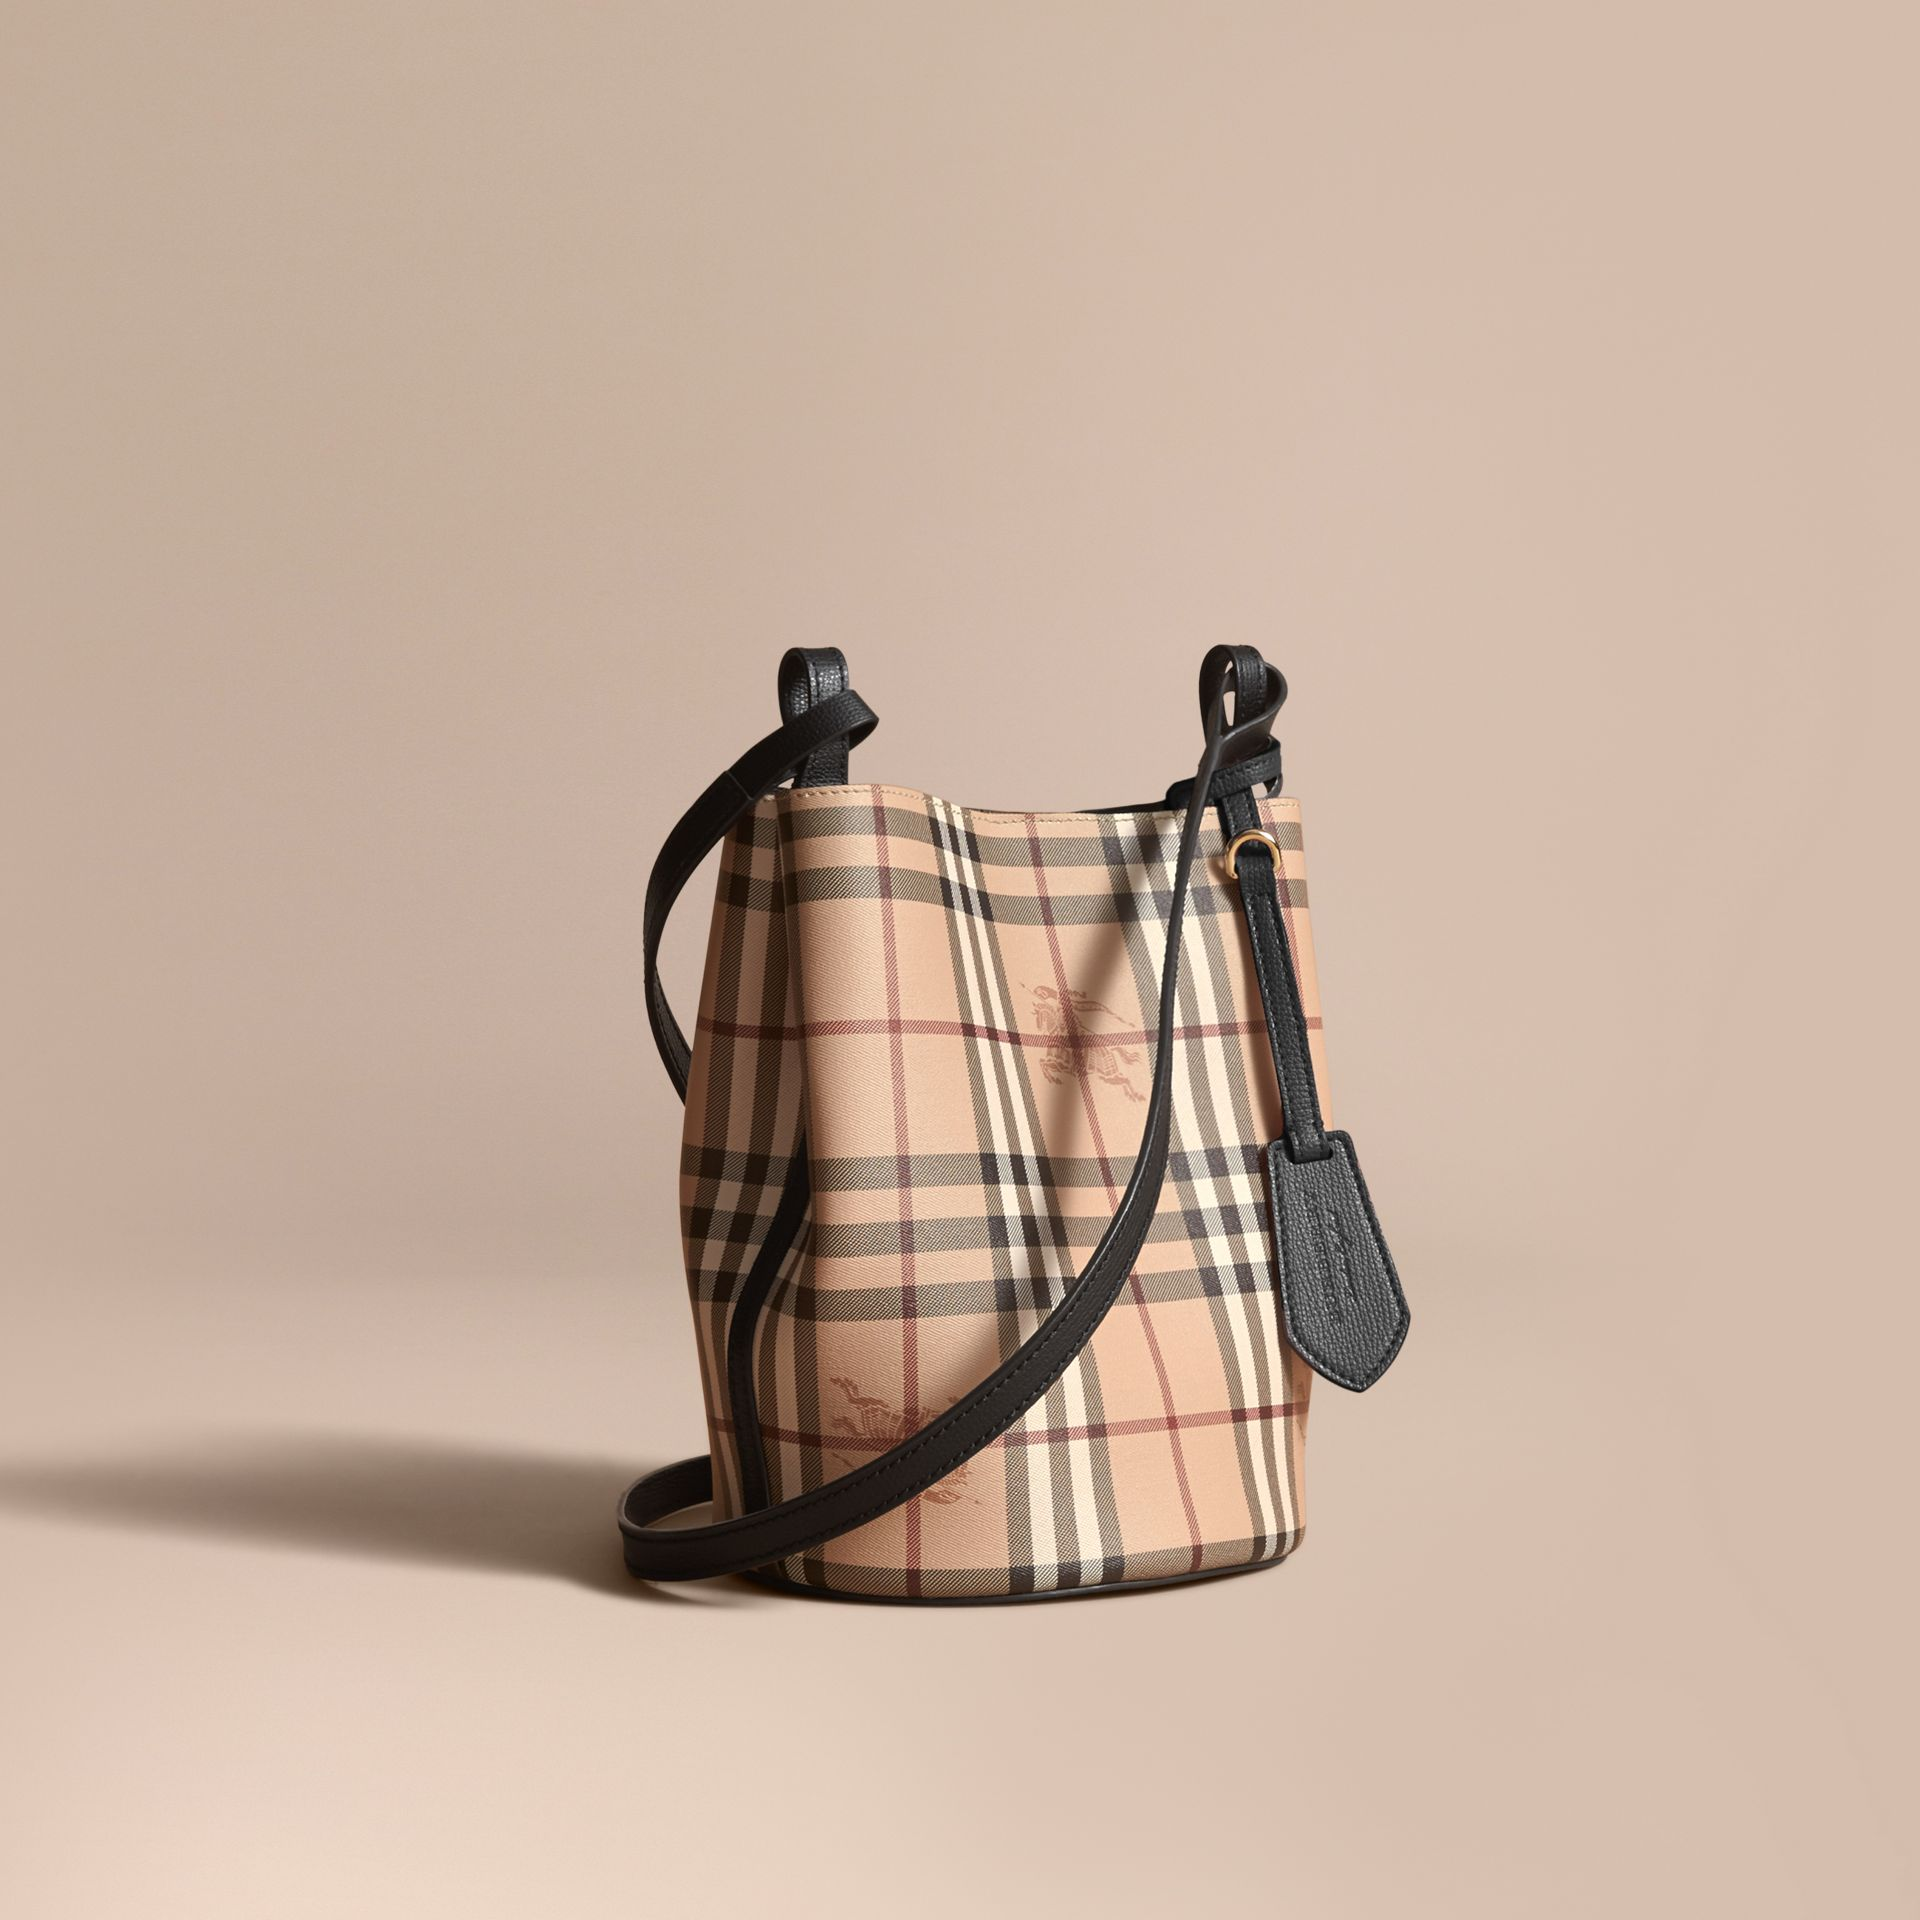 Leather and Haymarket Check Crossbody Bucket Bag in Black - Women | Burberry - gallery image 1